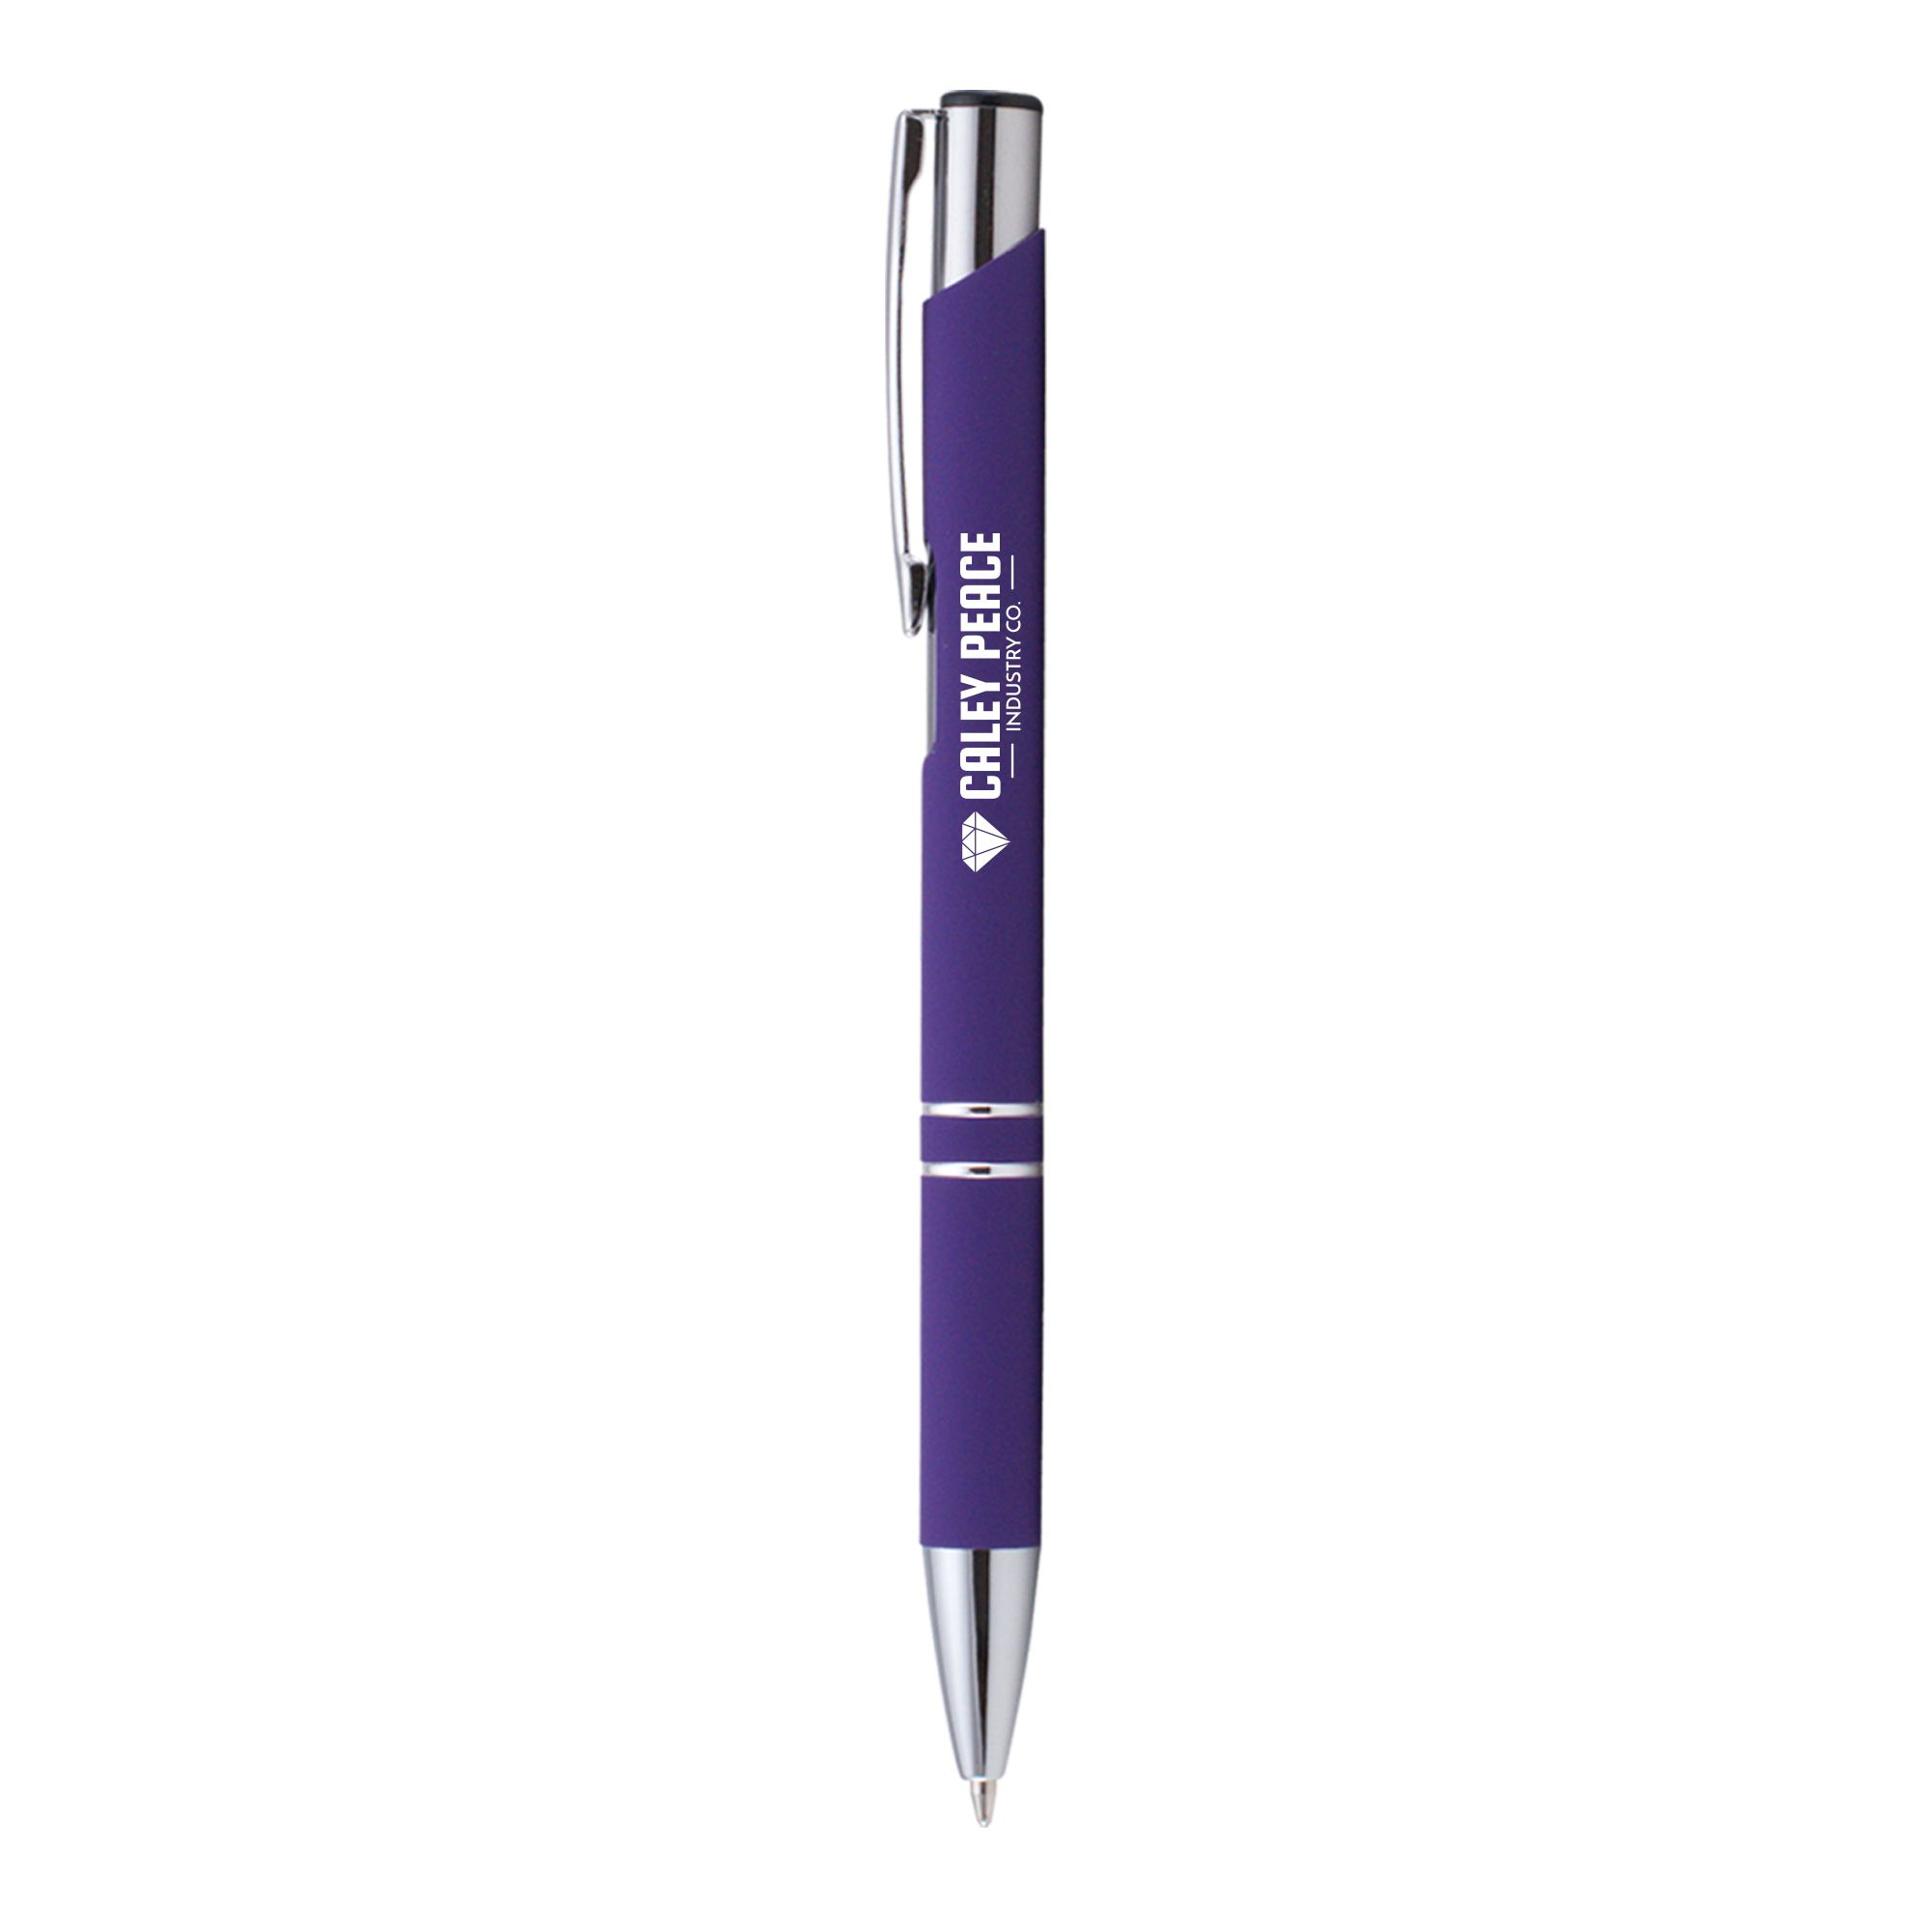 Goodies entreprise - Stylo bille personnalisable Crosby soft touch